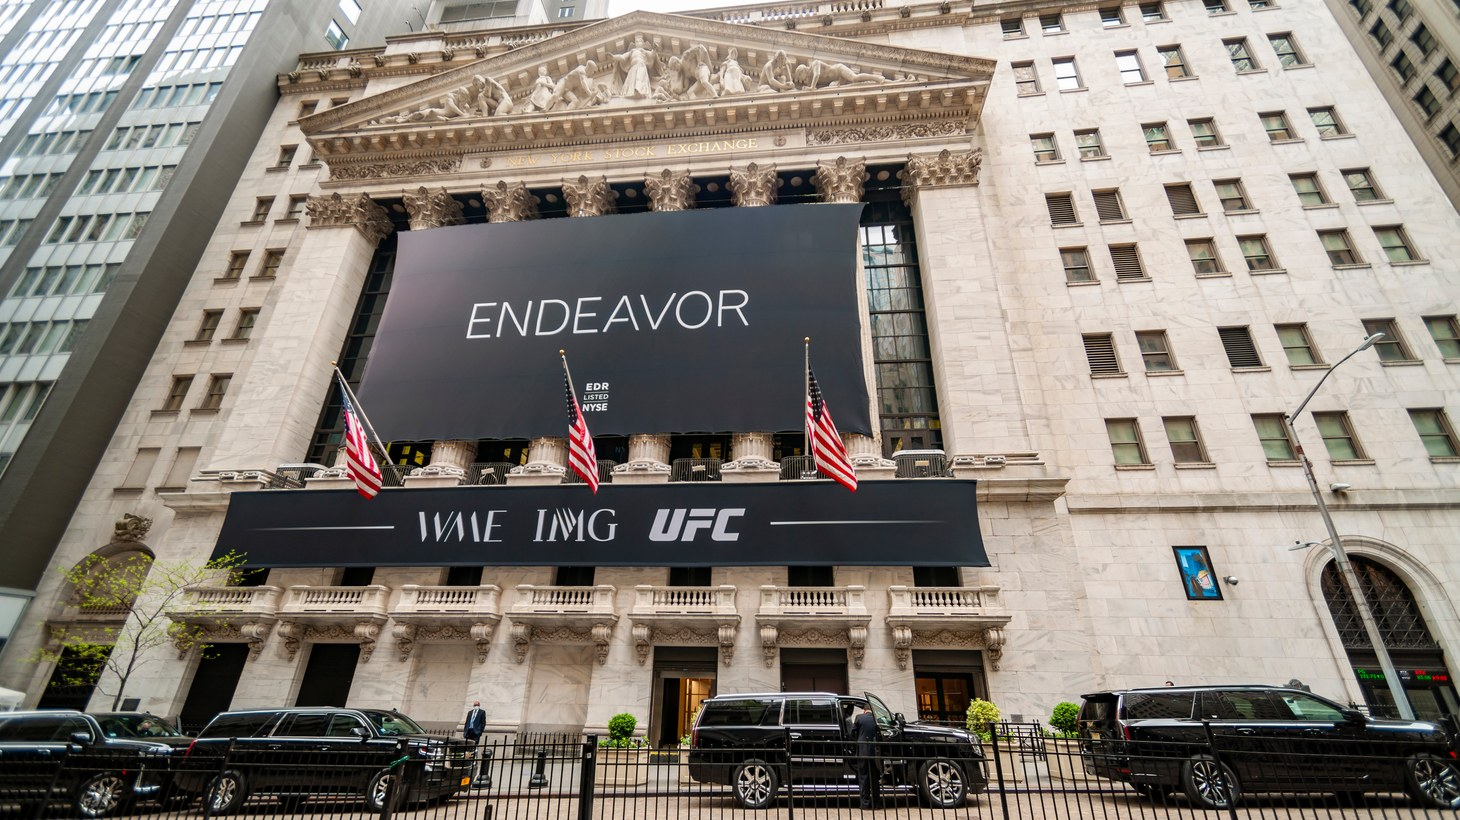 In April, The New York Stock Exchange was decorated for the initial public offering of the entertainment firm Endeavor. Now Ari Emanuel's company has issued its first earning report since going public.